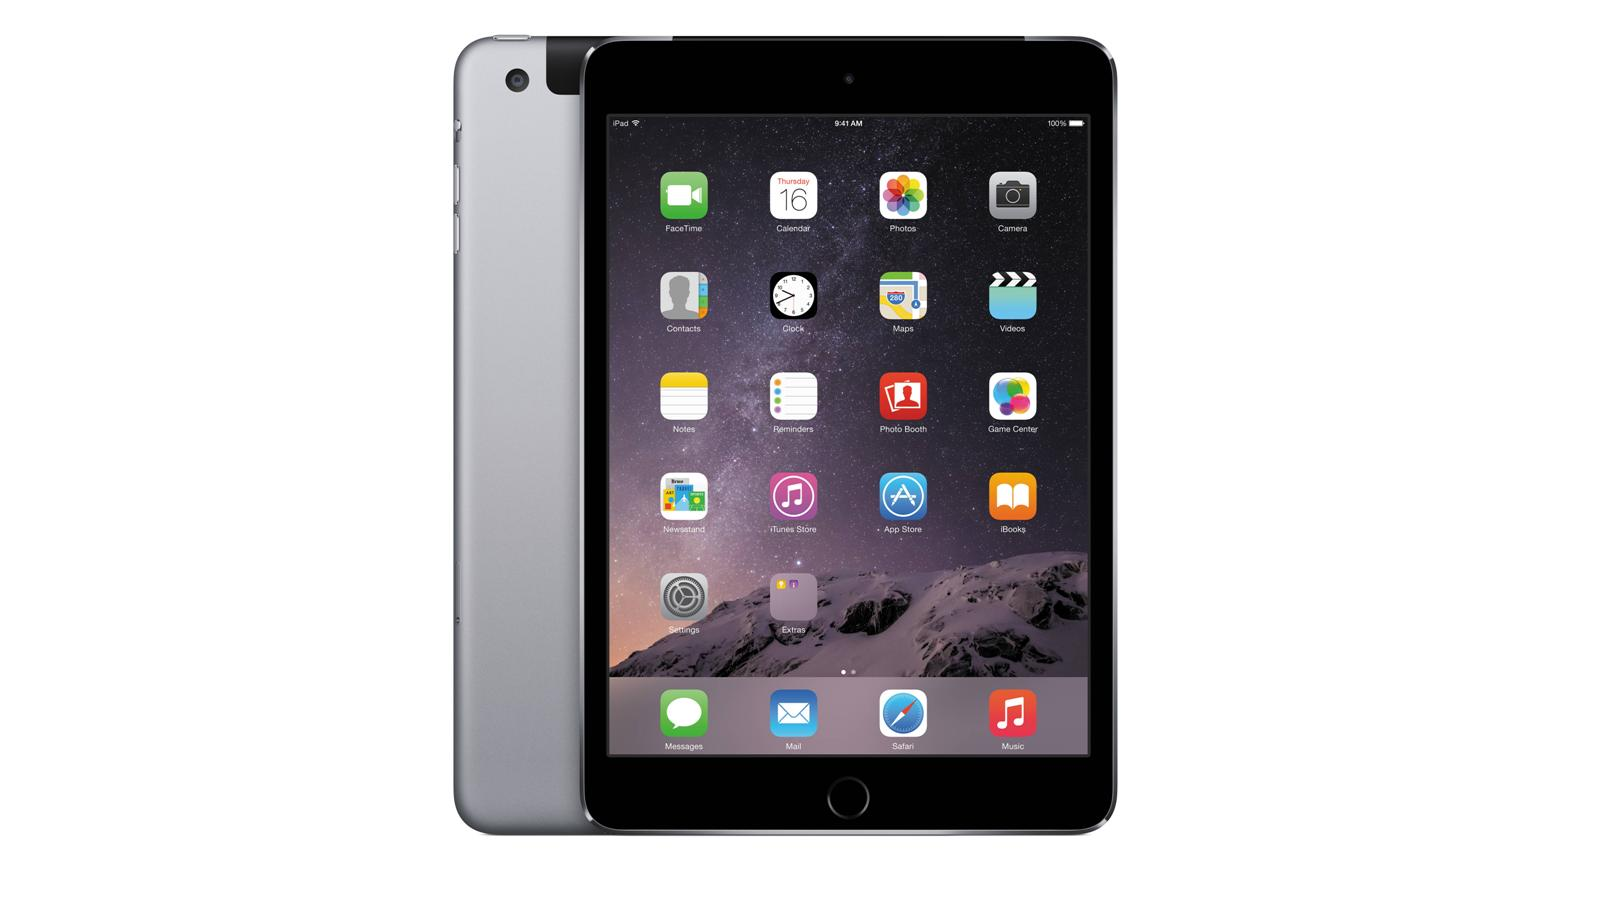 Nationwide Mattress Stores Apple iPad mini 3 4G 16GB - Space Gray | Harvey Norman Malaysia